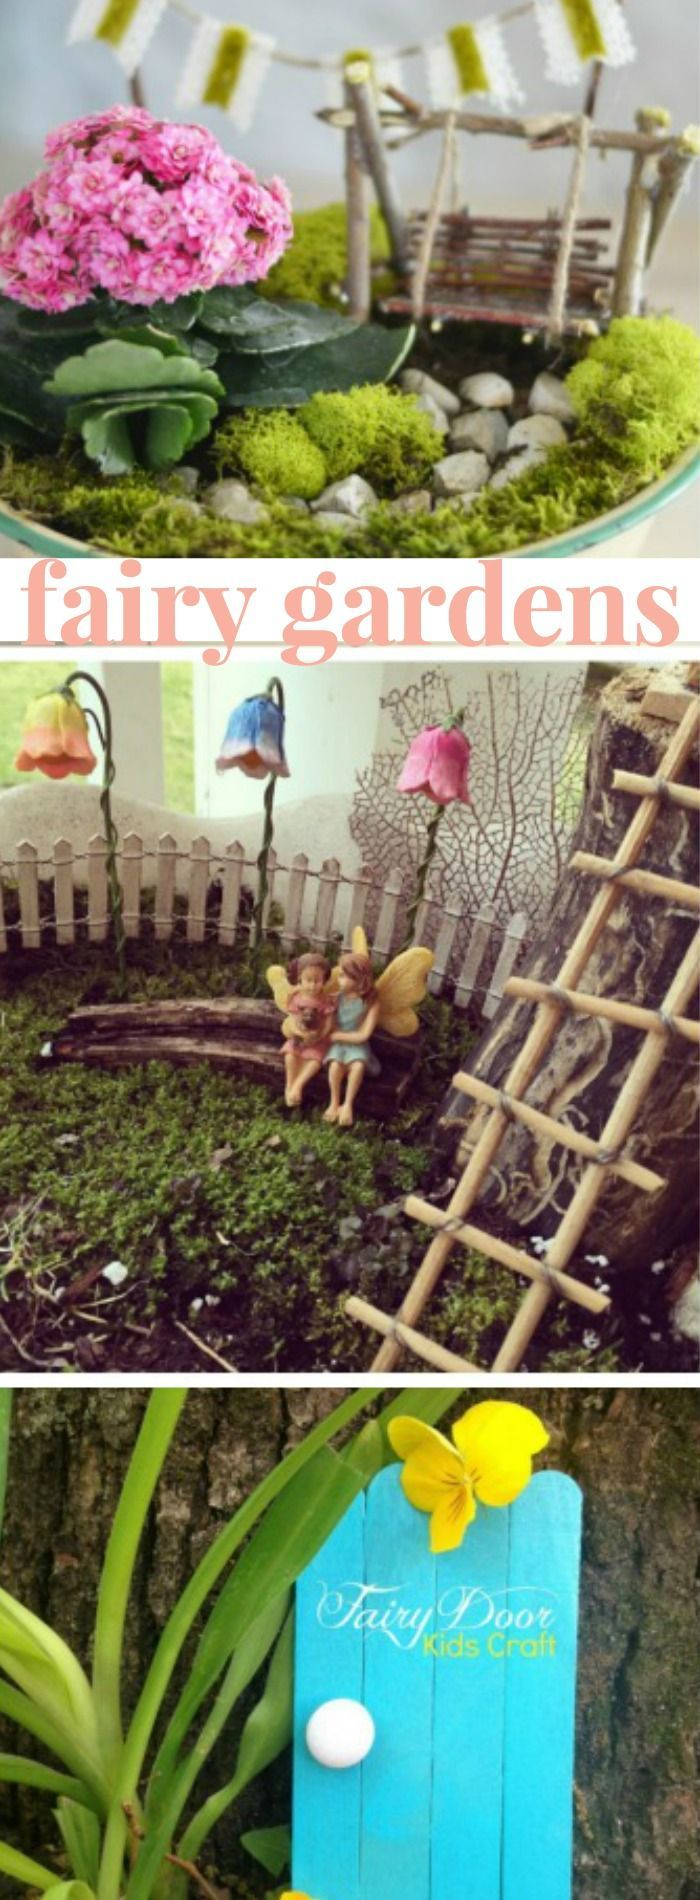 HOW TO CREATE A FAIRY GARDEN & ACCESSORIES